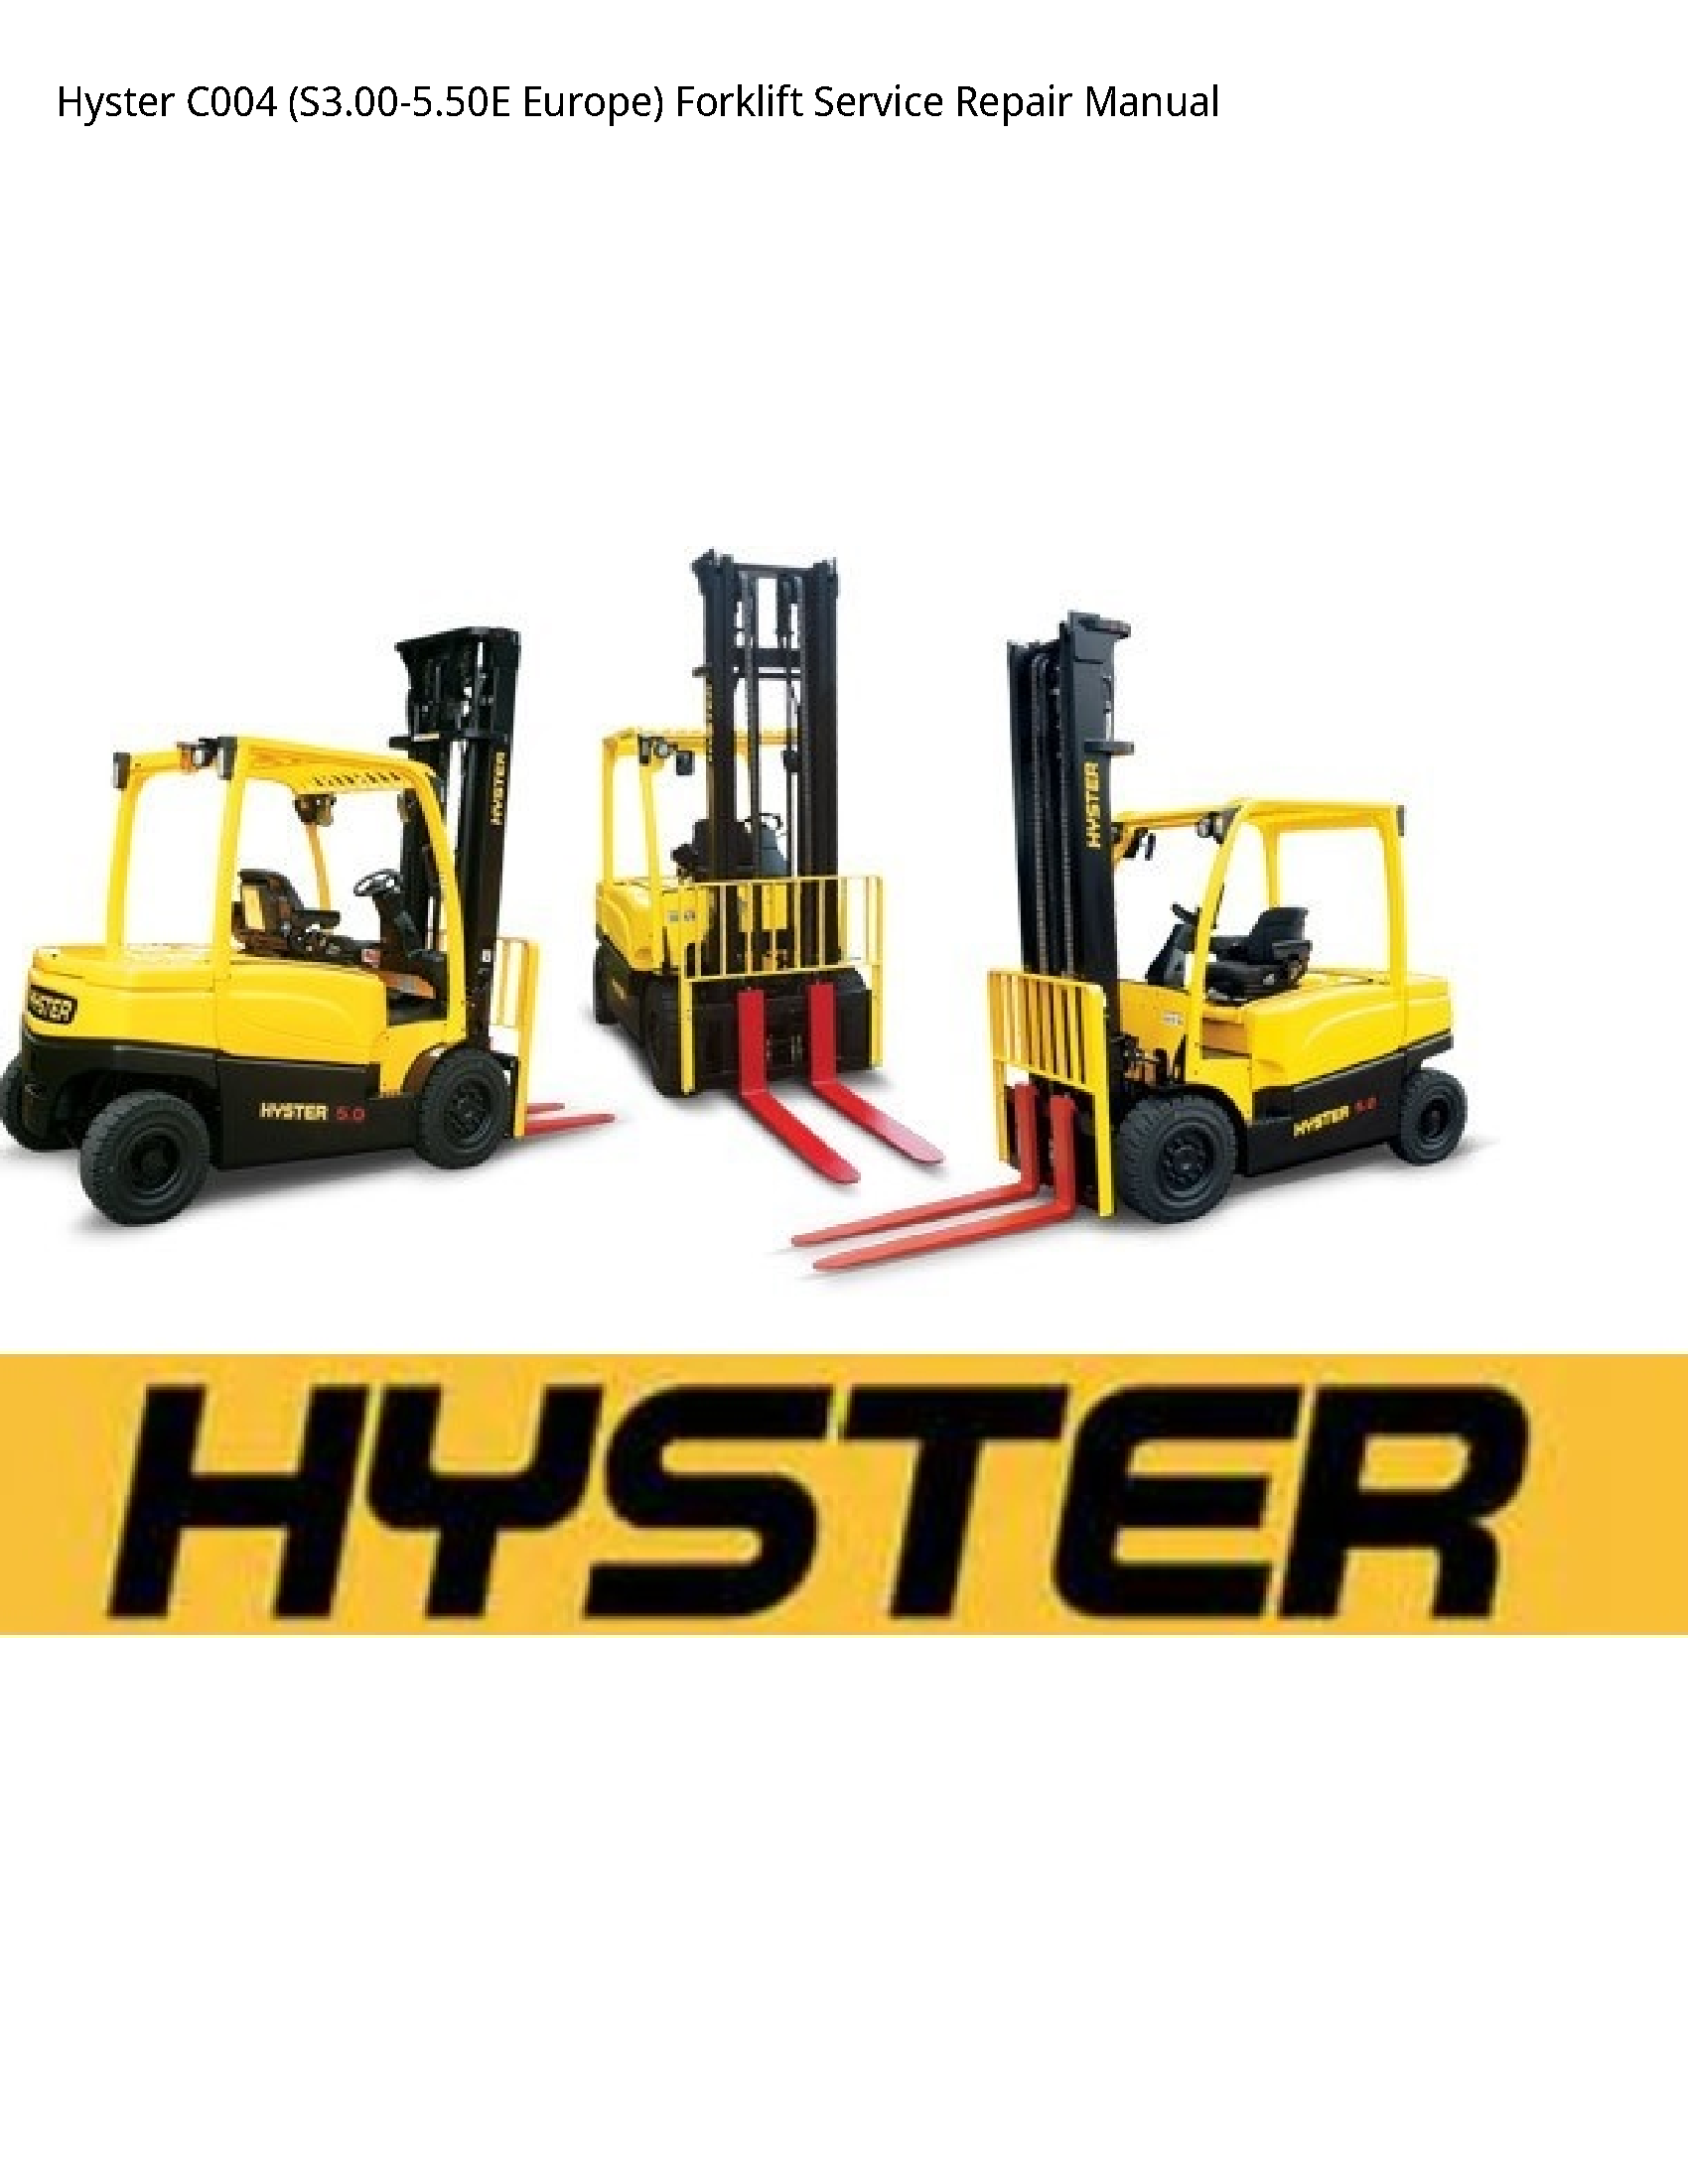 Hyster C004 Europe) Forklift manual